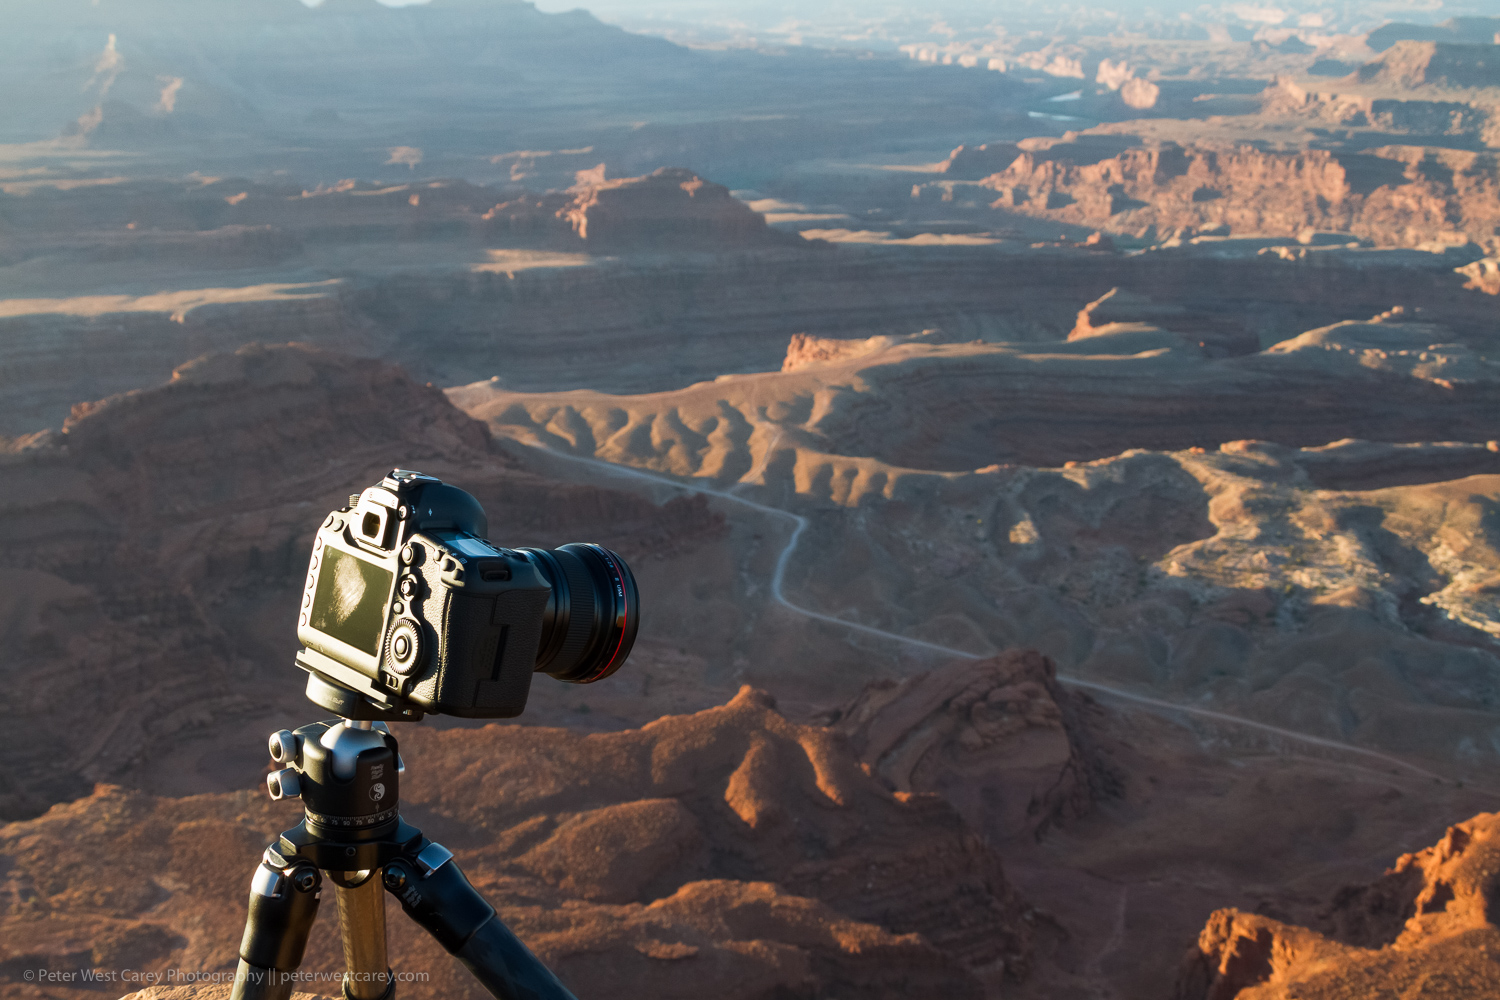 10 Questions to Ask a Tour Operator Before Signing up for a Photography Tour